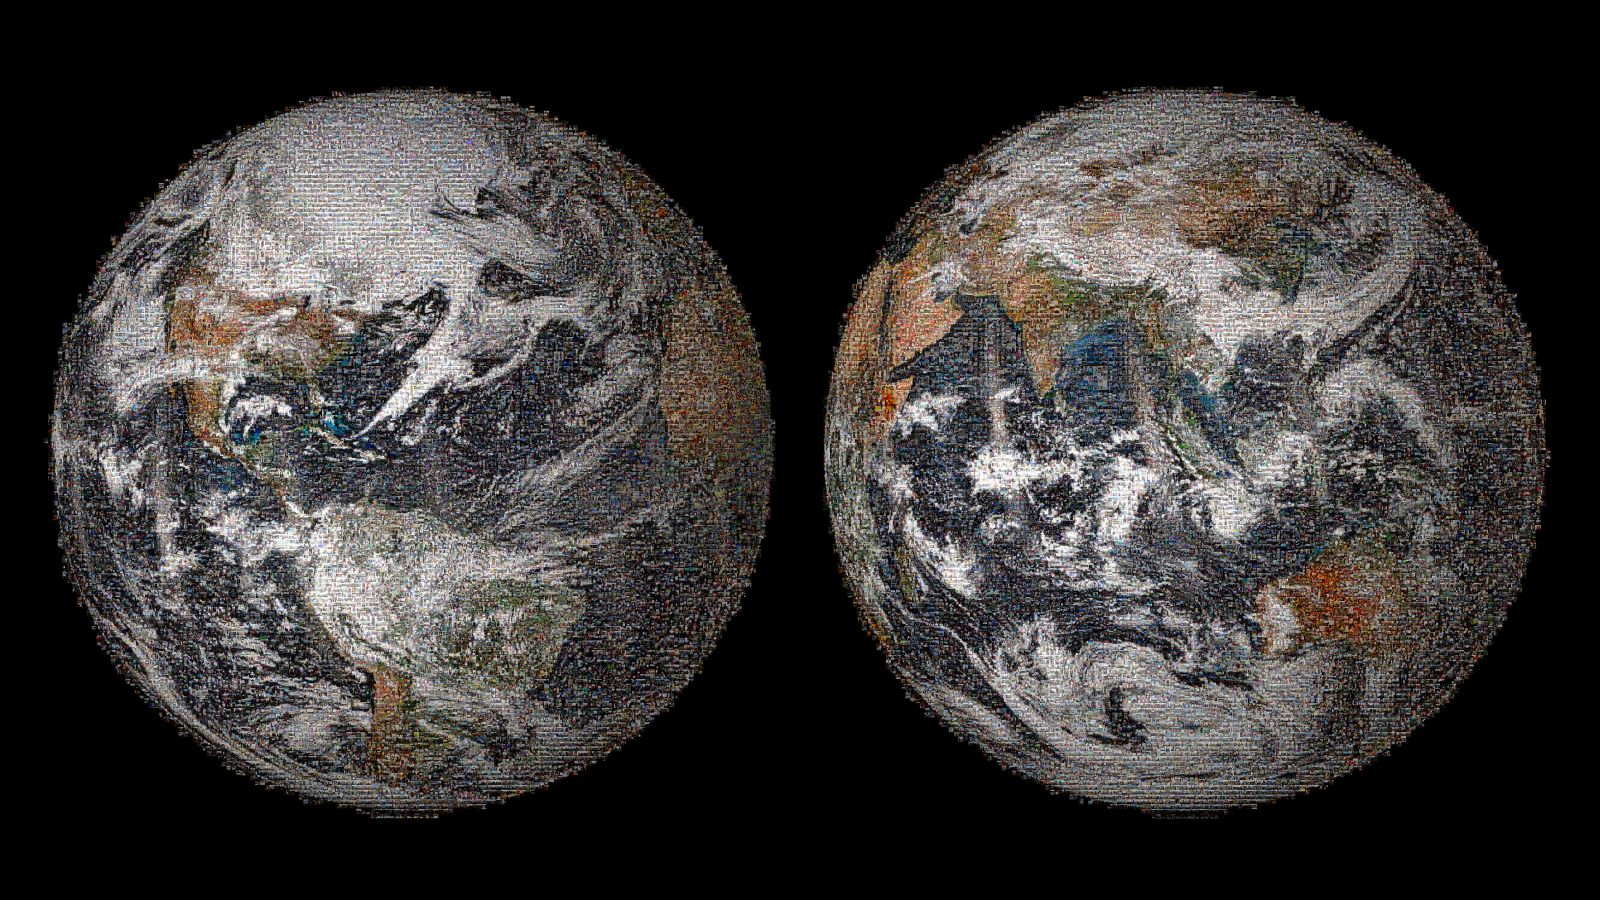 The 3.2 gigapixel Global Selfie mosaic was made with 36,422 individual selfies that were posted to social media sites on or around Earth Day, April 22, 2014.